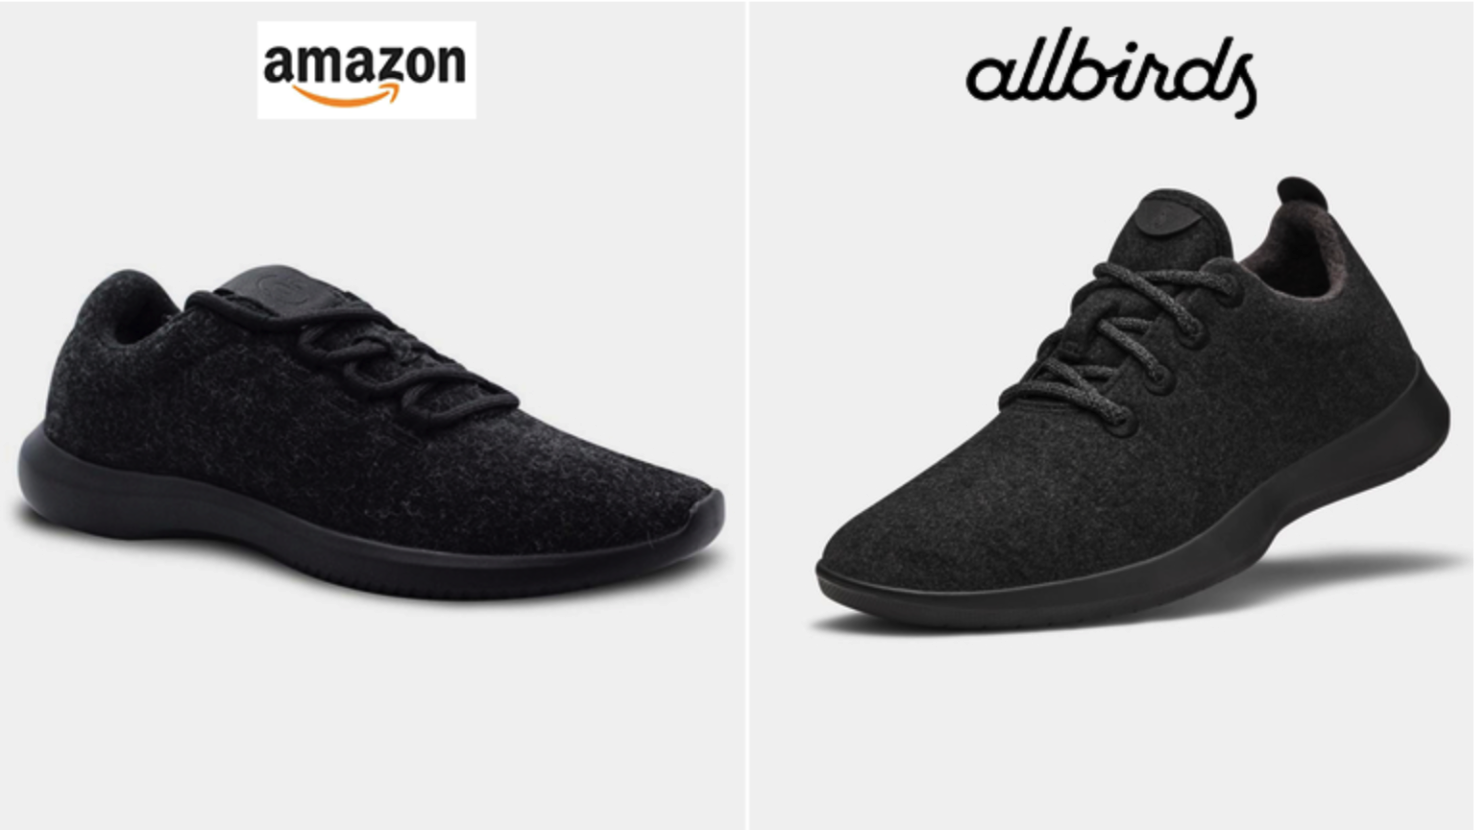 Allbirds-Amazon-brandstar-wool